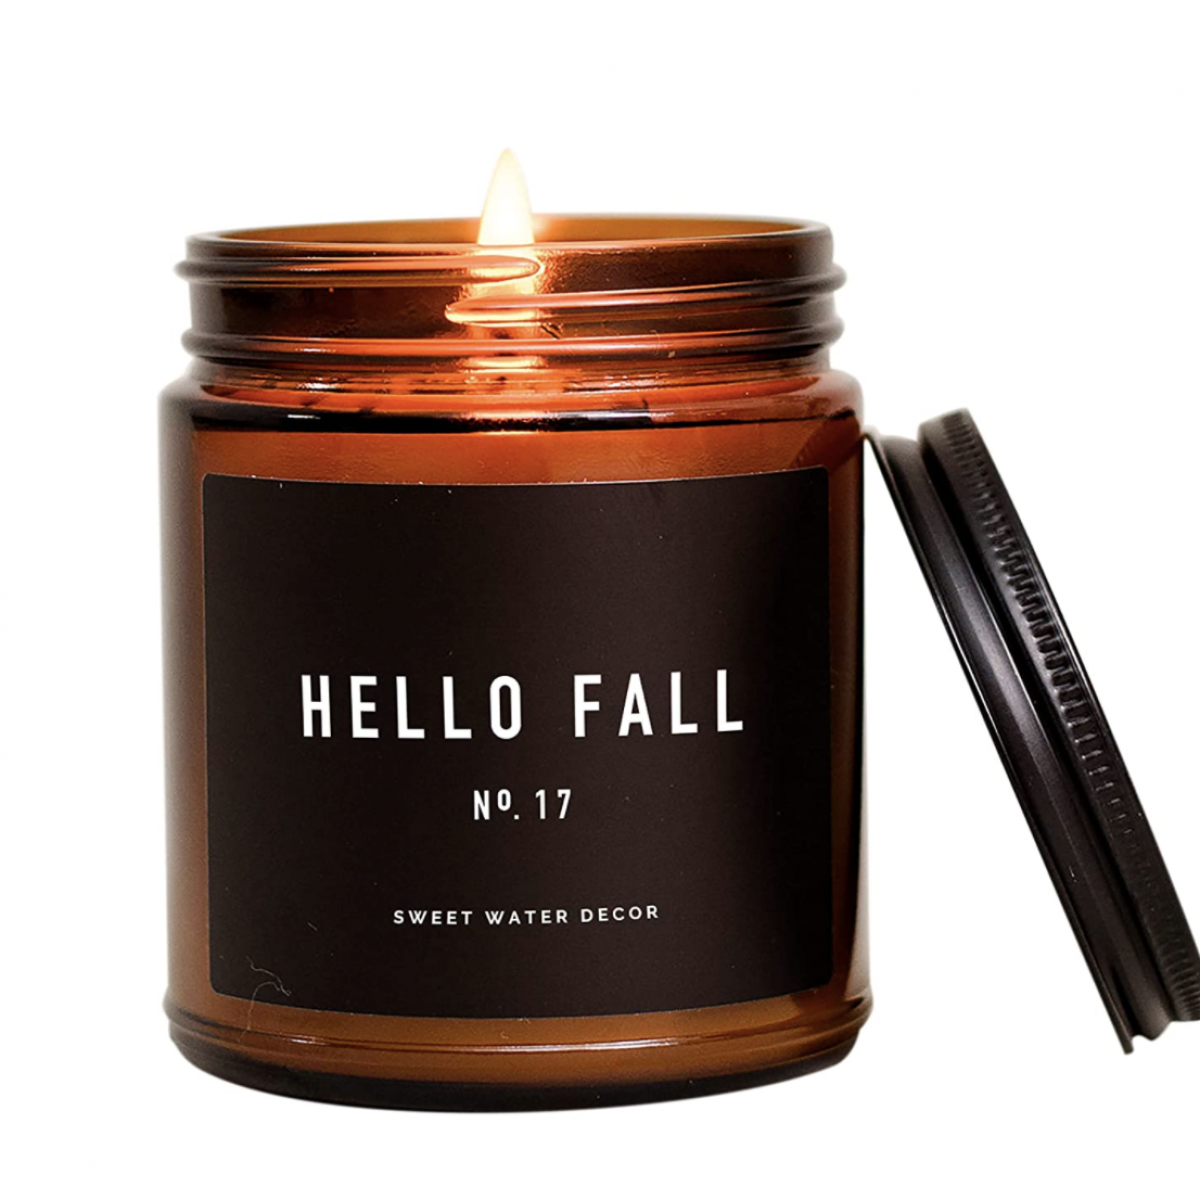 7 Candles You Need To Fill Your Home With Fall Vibes